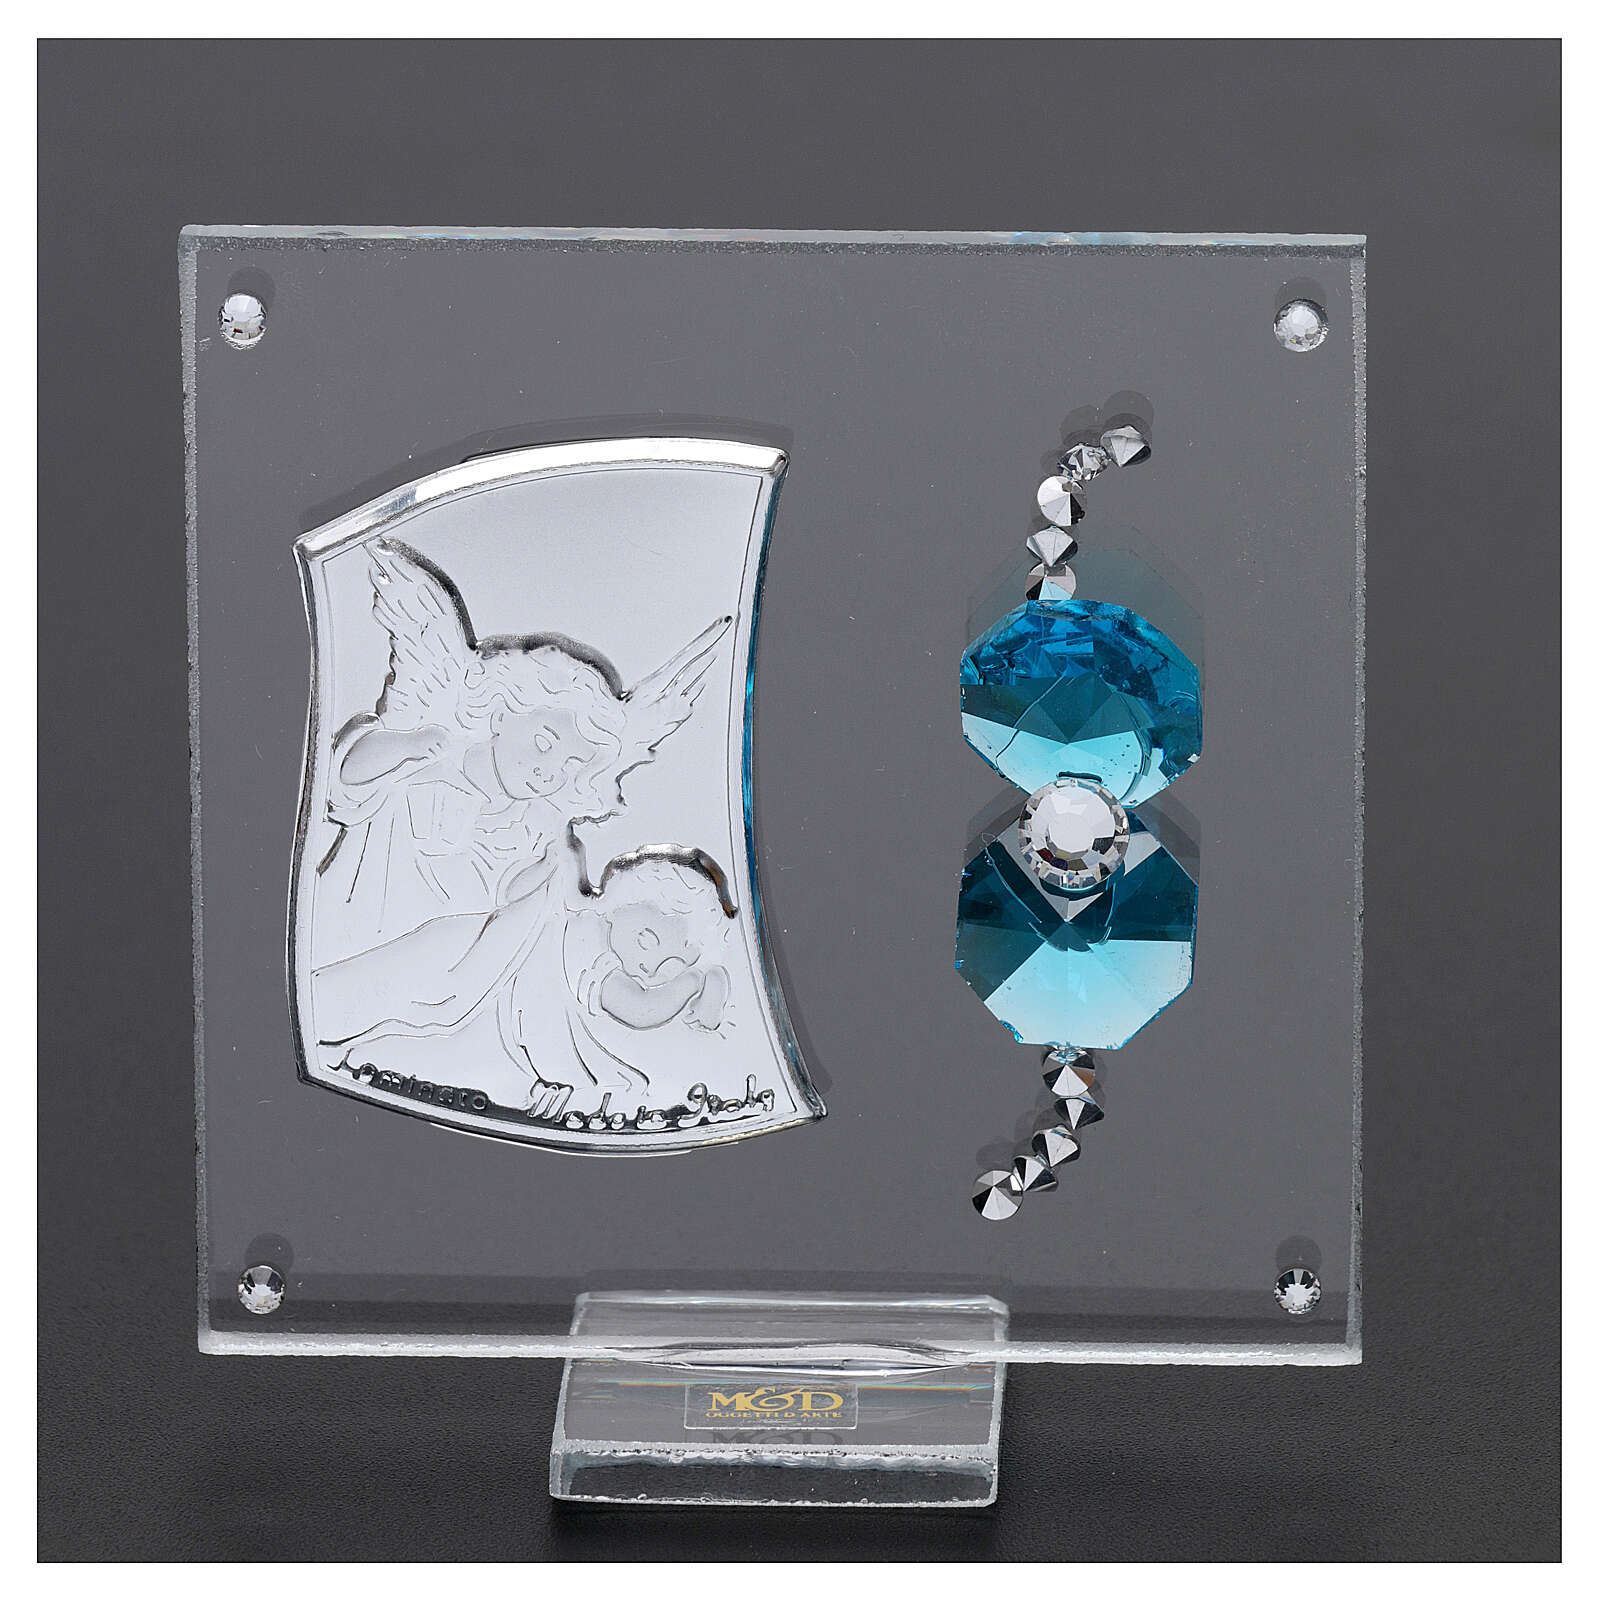 Favor Guardian angel of silver foil for boy 3x3 in 3